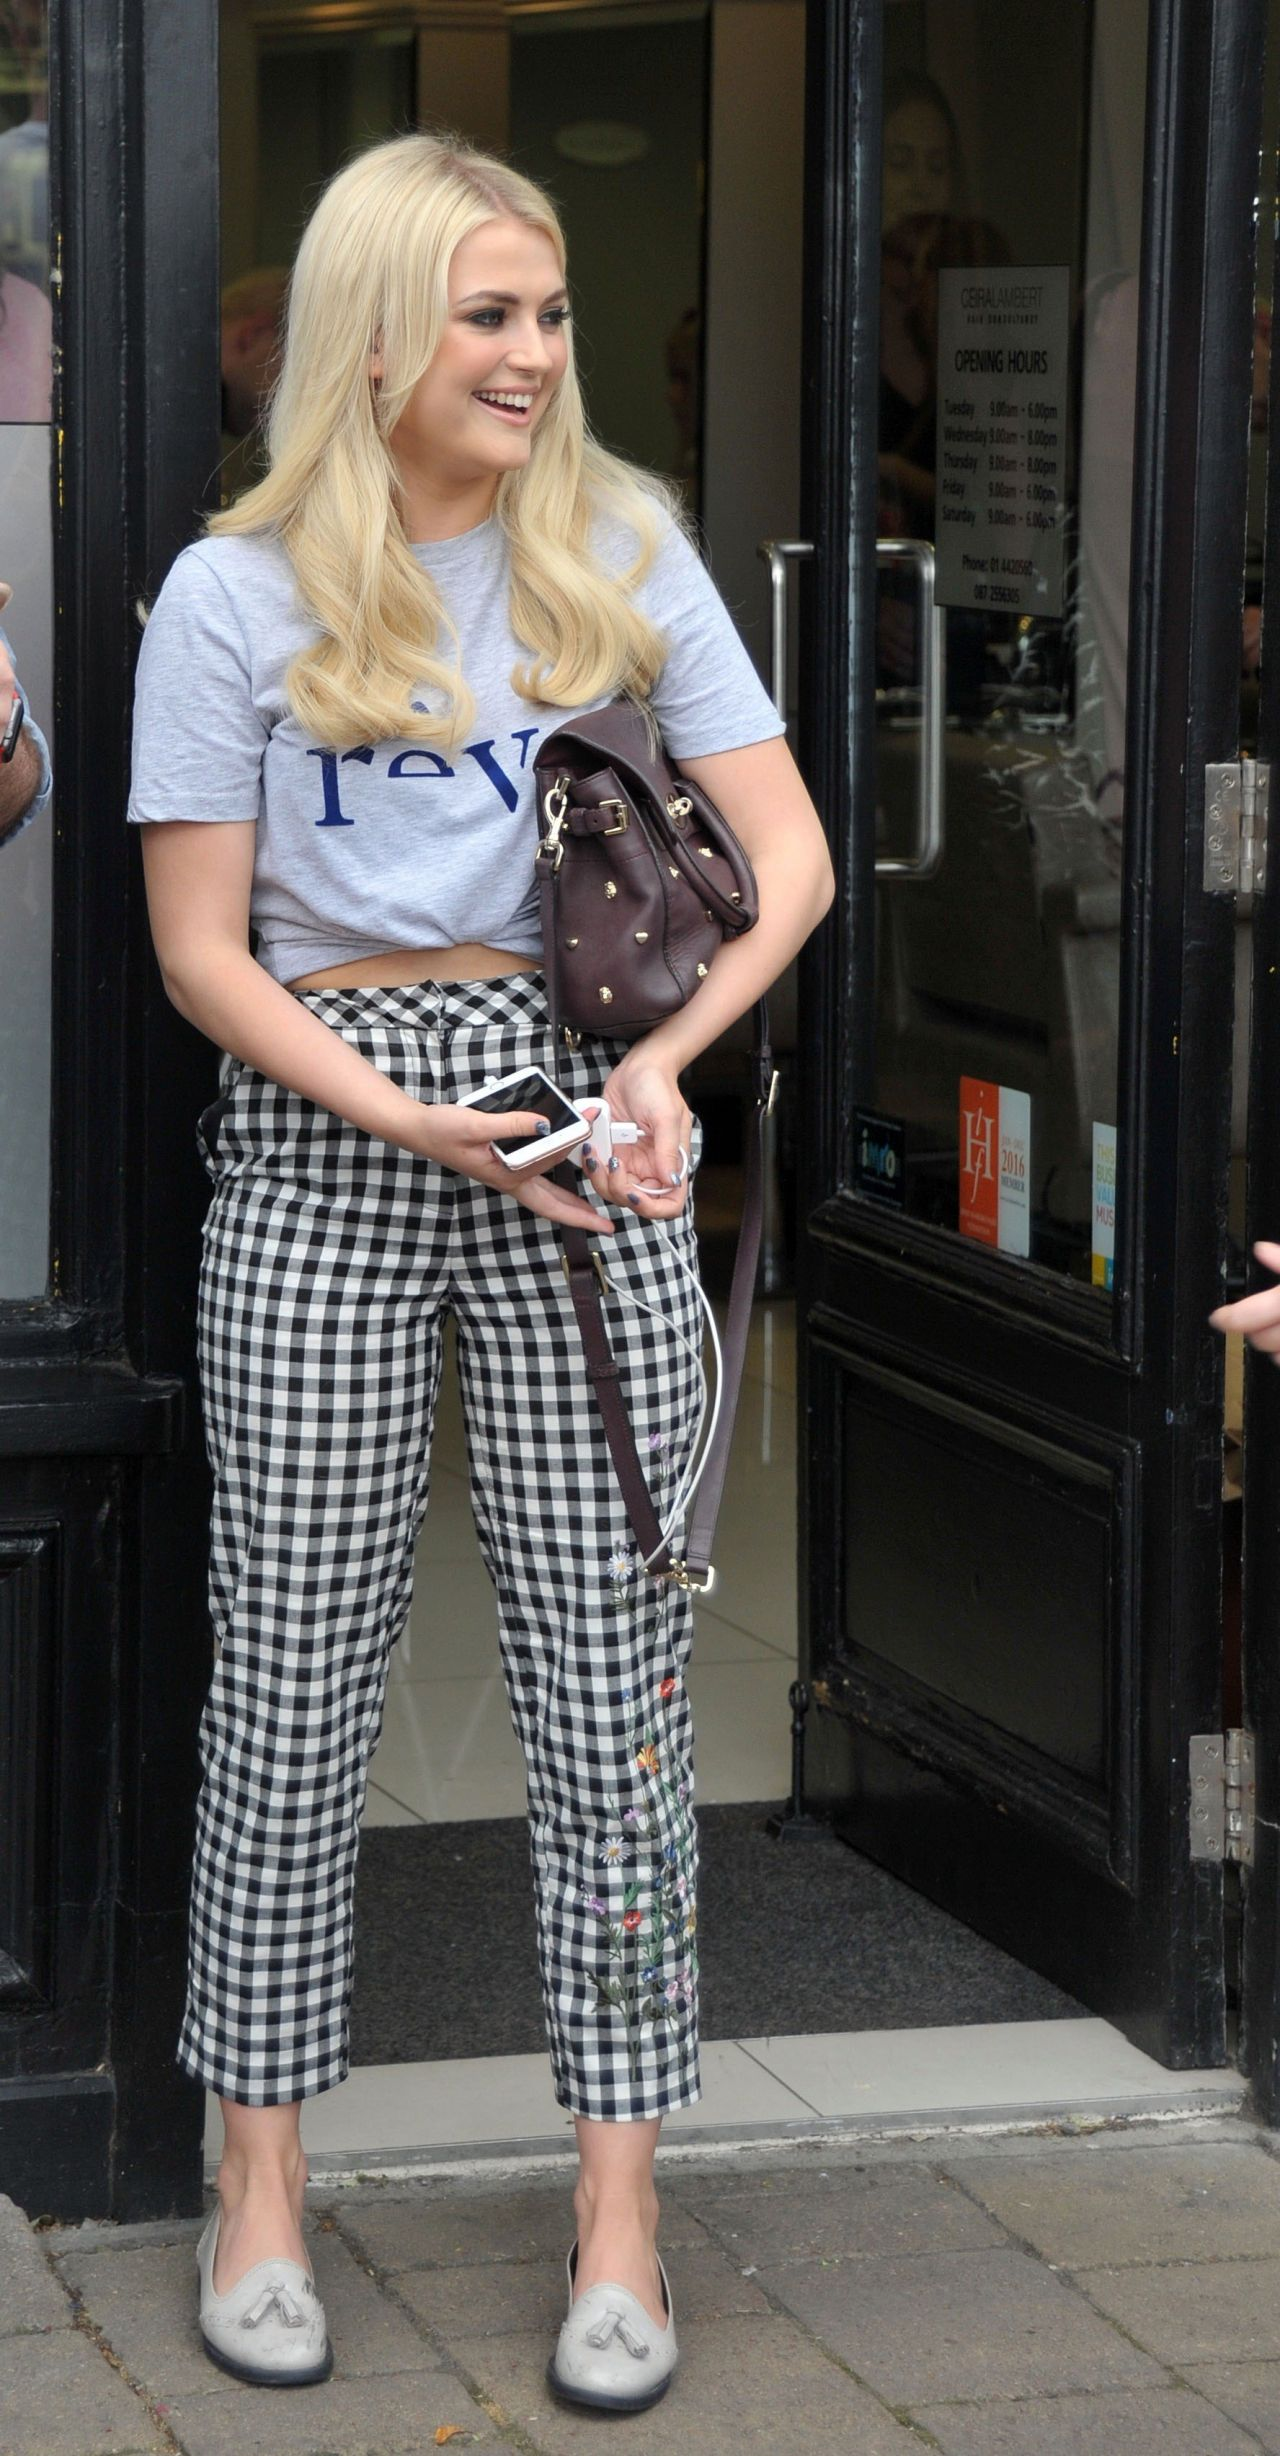 lucy-fallon-cute-style-at-ceira-lamberts-hair-salon-in-shankill-village-dublin-06-17-2017-3.jpg (1280×2456)